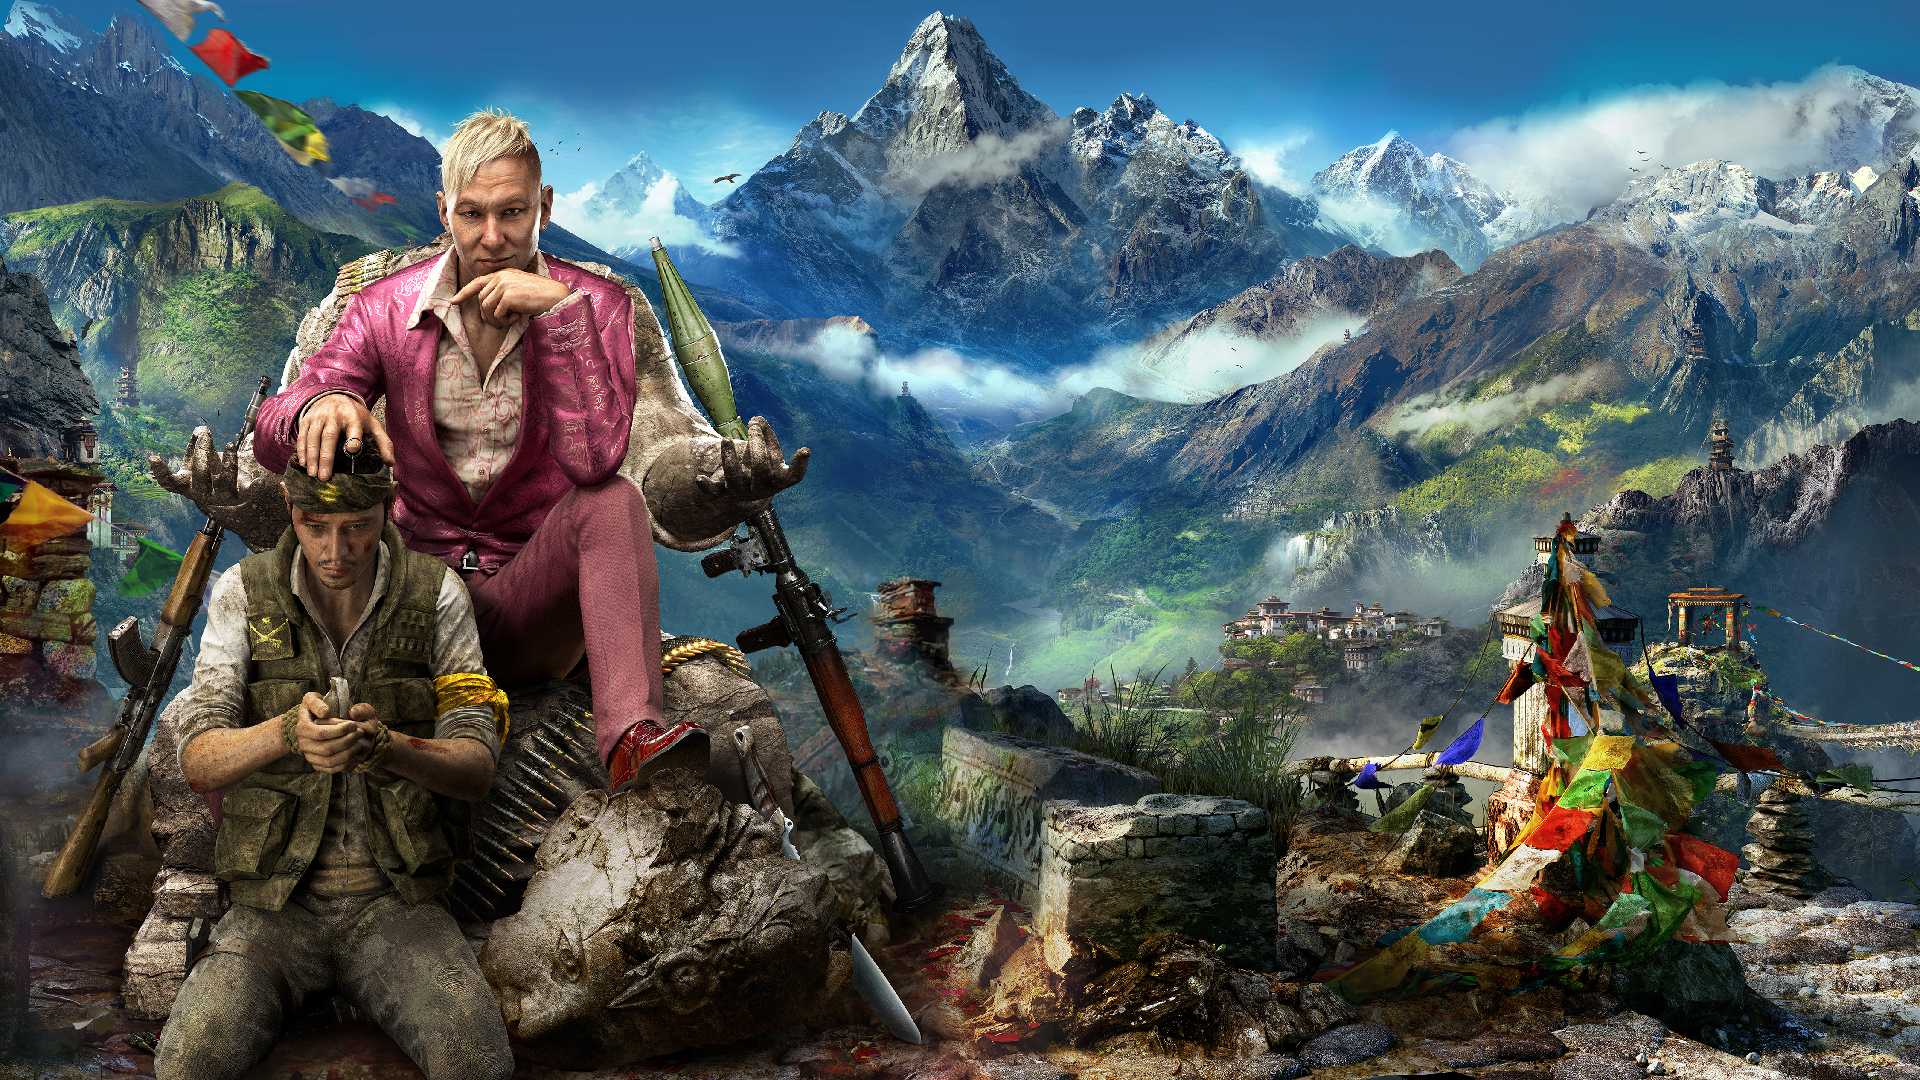 Far Cry 4 Wallpapers Top Free Far Cry 4 Backgrounds Wallpaperaccess